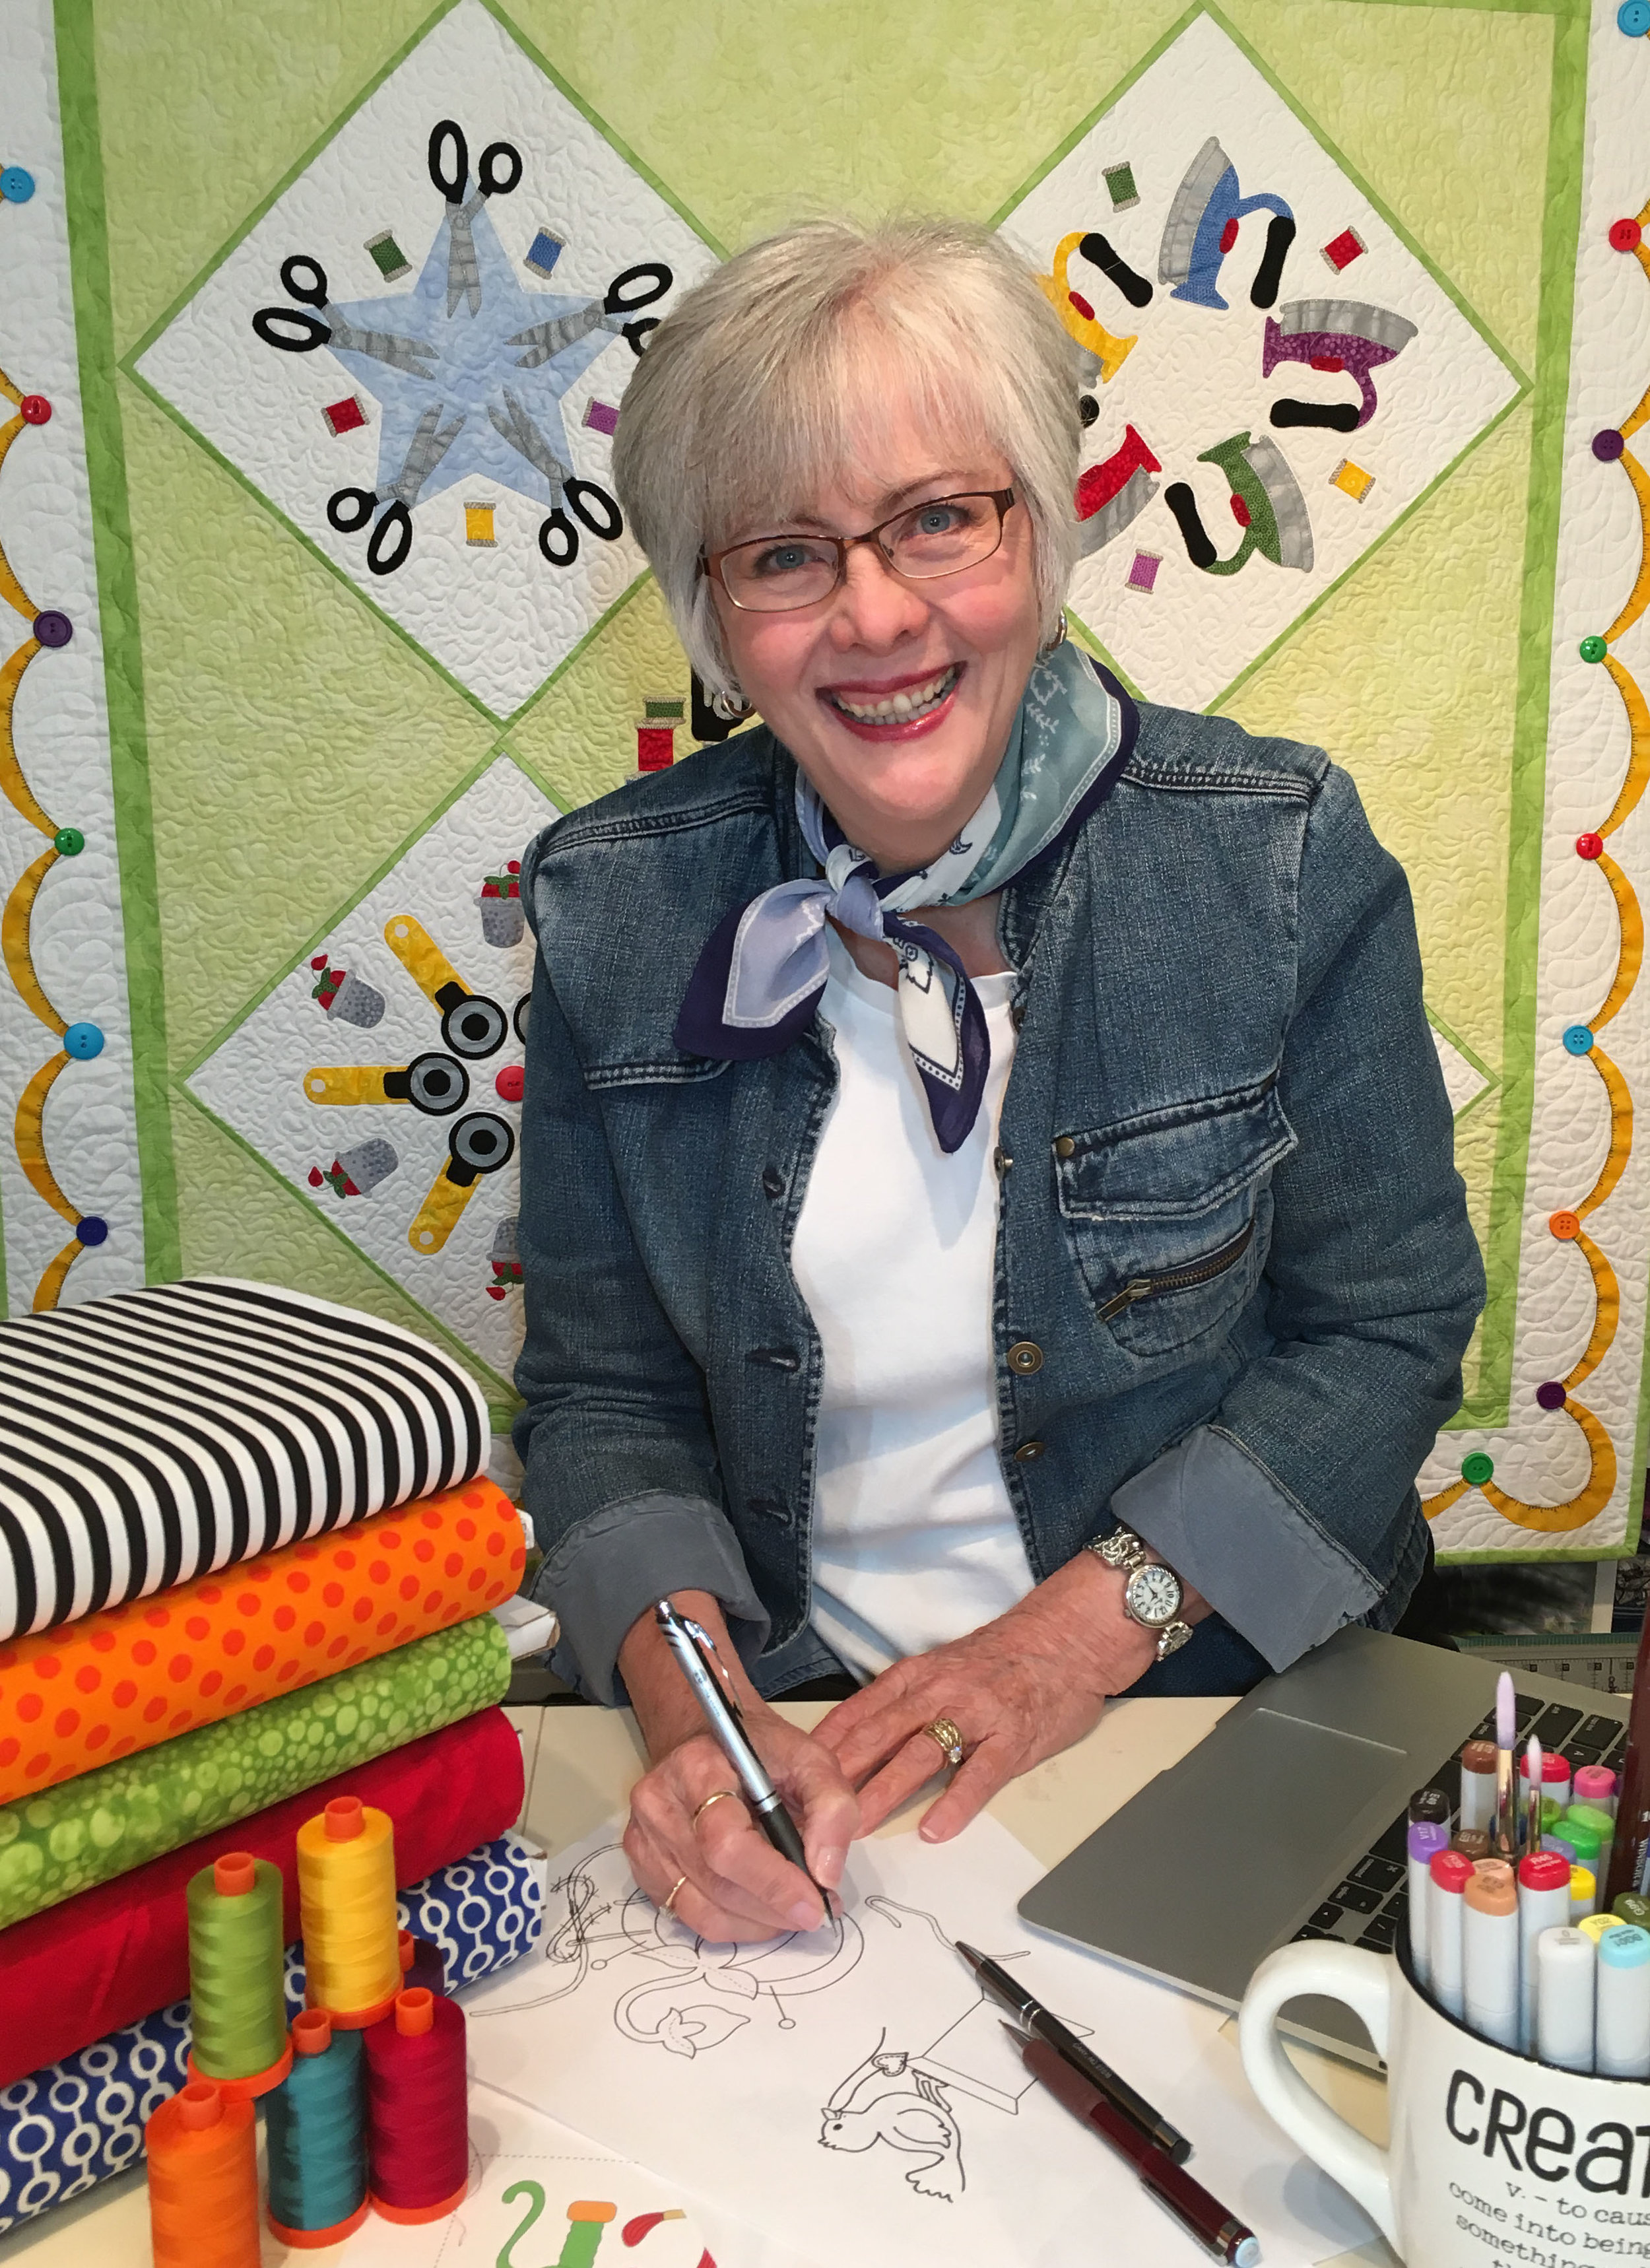 A Little About Me… - Sandy Fitzpatrick of Hissyfitz Designs is an applique quilt pattern designer whose goal is to get as many of the quirky designs, that are spinning around in her head, down on paper for you to enjoy! Her fusible applique patterns are full of whimsy and will certainly bring a smile to your face. Sandy strives to make her full-sized patterns easy to follow and fun to make. Her classes, which focus on machine applique, free-motion quilting, floor cloths, and art quilts, are equally fun!Having lived in many places as she and her husband moved around with the Air Force, Sandy currently lives in Cary, North Carolina. Her lectures and workshops are always an informative, fun experience.